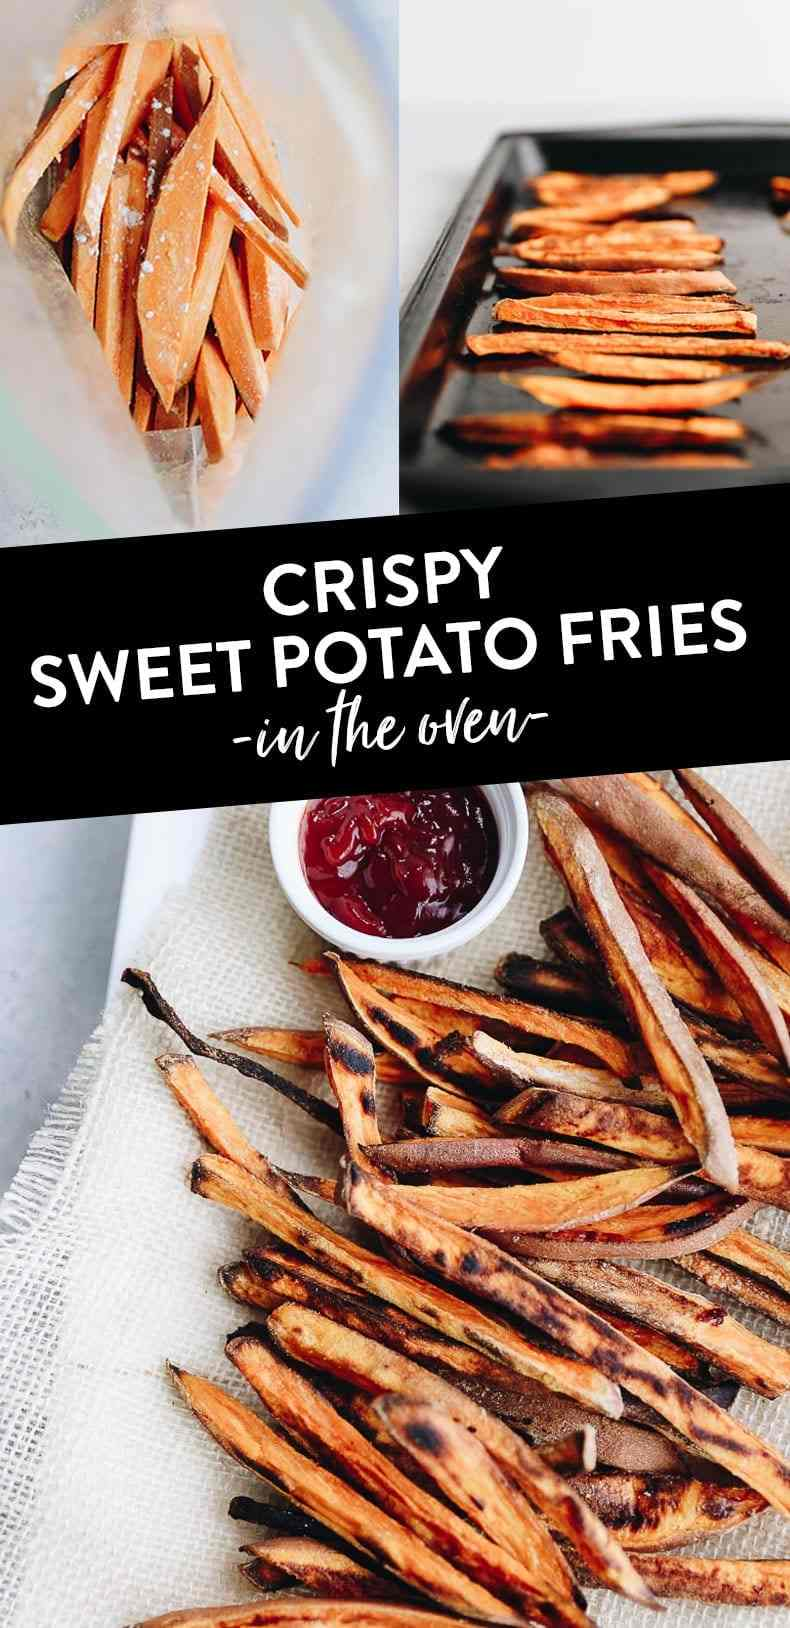 Want to know the trick to the perfect crispy baked sweet potato fries? This recipe teaches you how to make baked sweet potato fries that are crispy on the edges and soft in the middle - the whole family will love this healthy side! #sweetpotatofries #crispysweetpotatofries